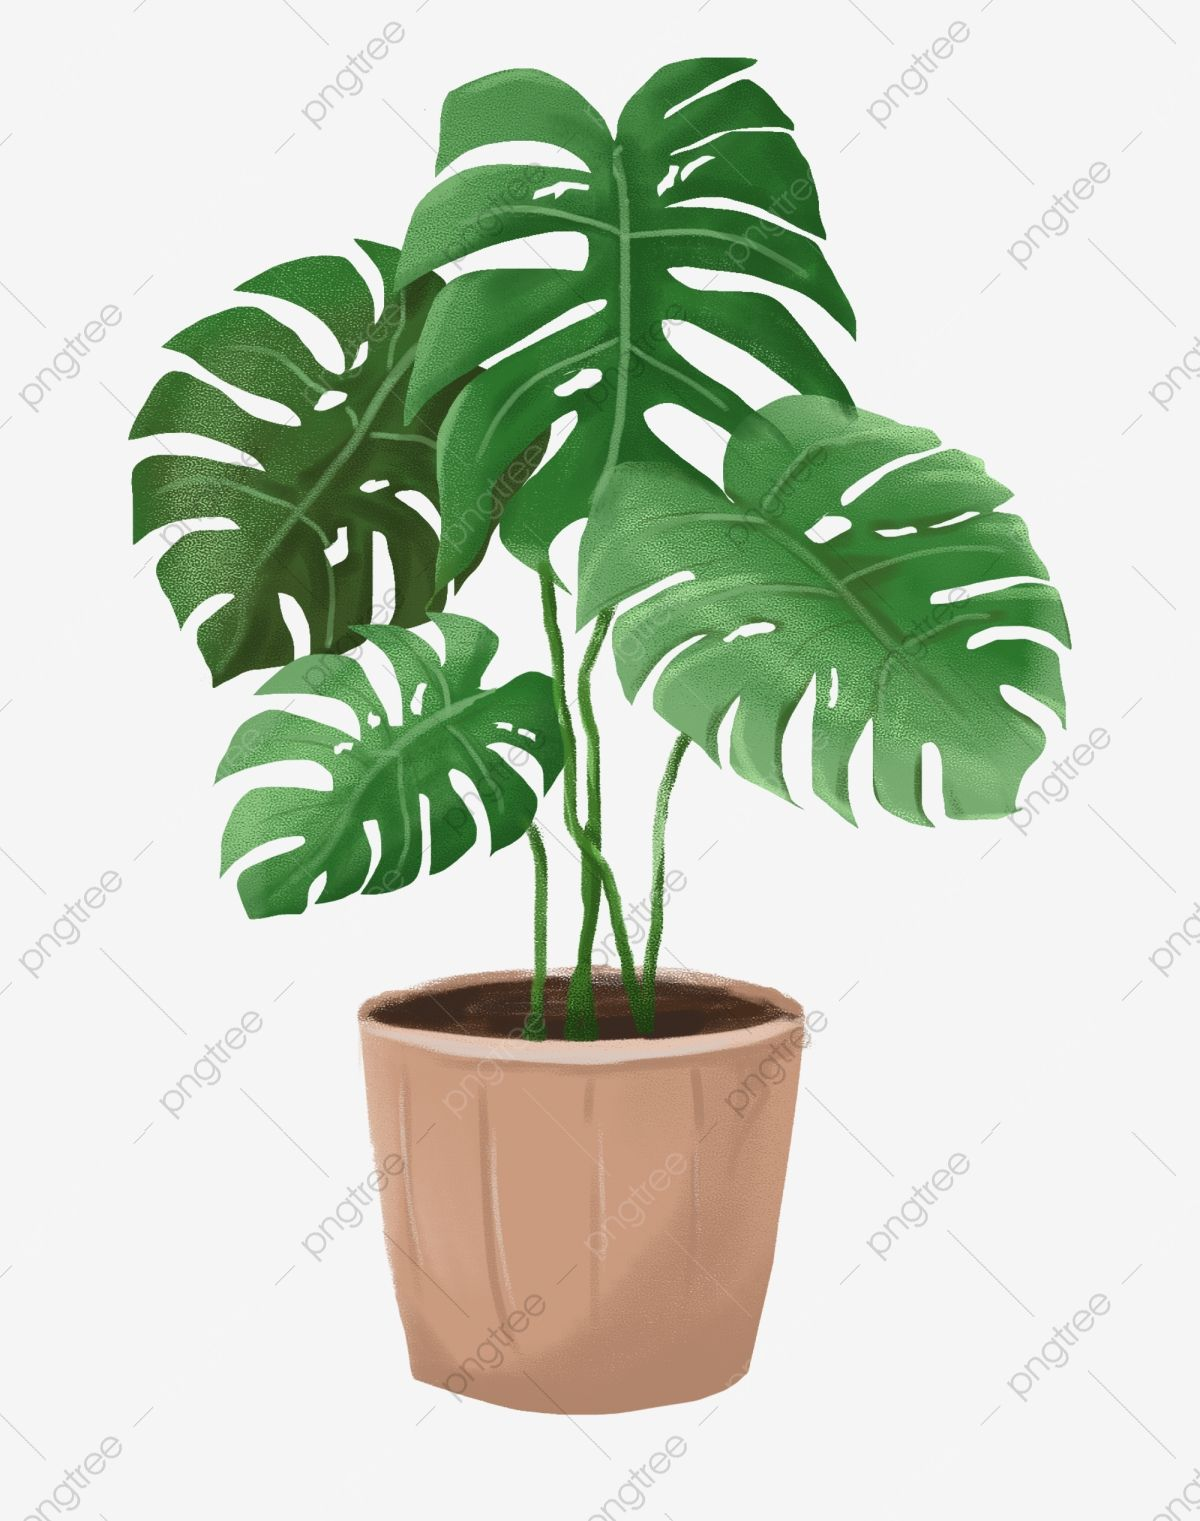 Plant Gardening Pot Png Transparent Clipart Image And Psd File For Free Download Plants Plant Vector Flower Pot Garden